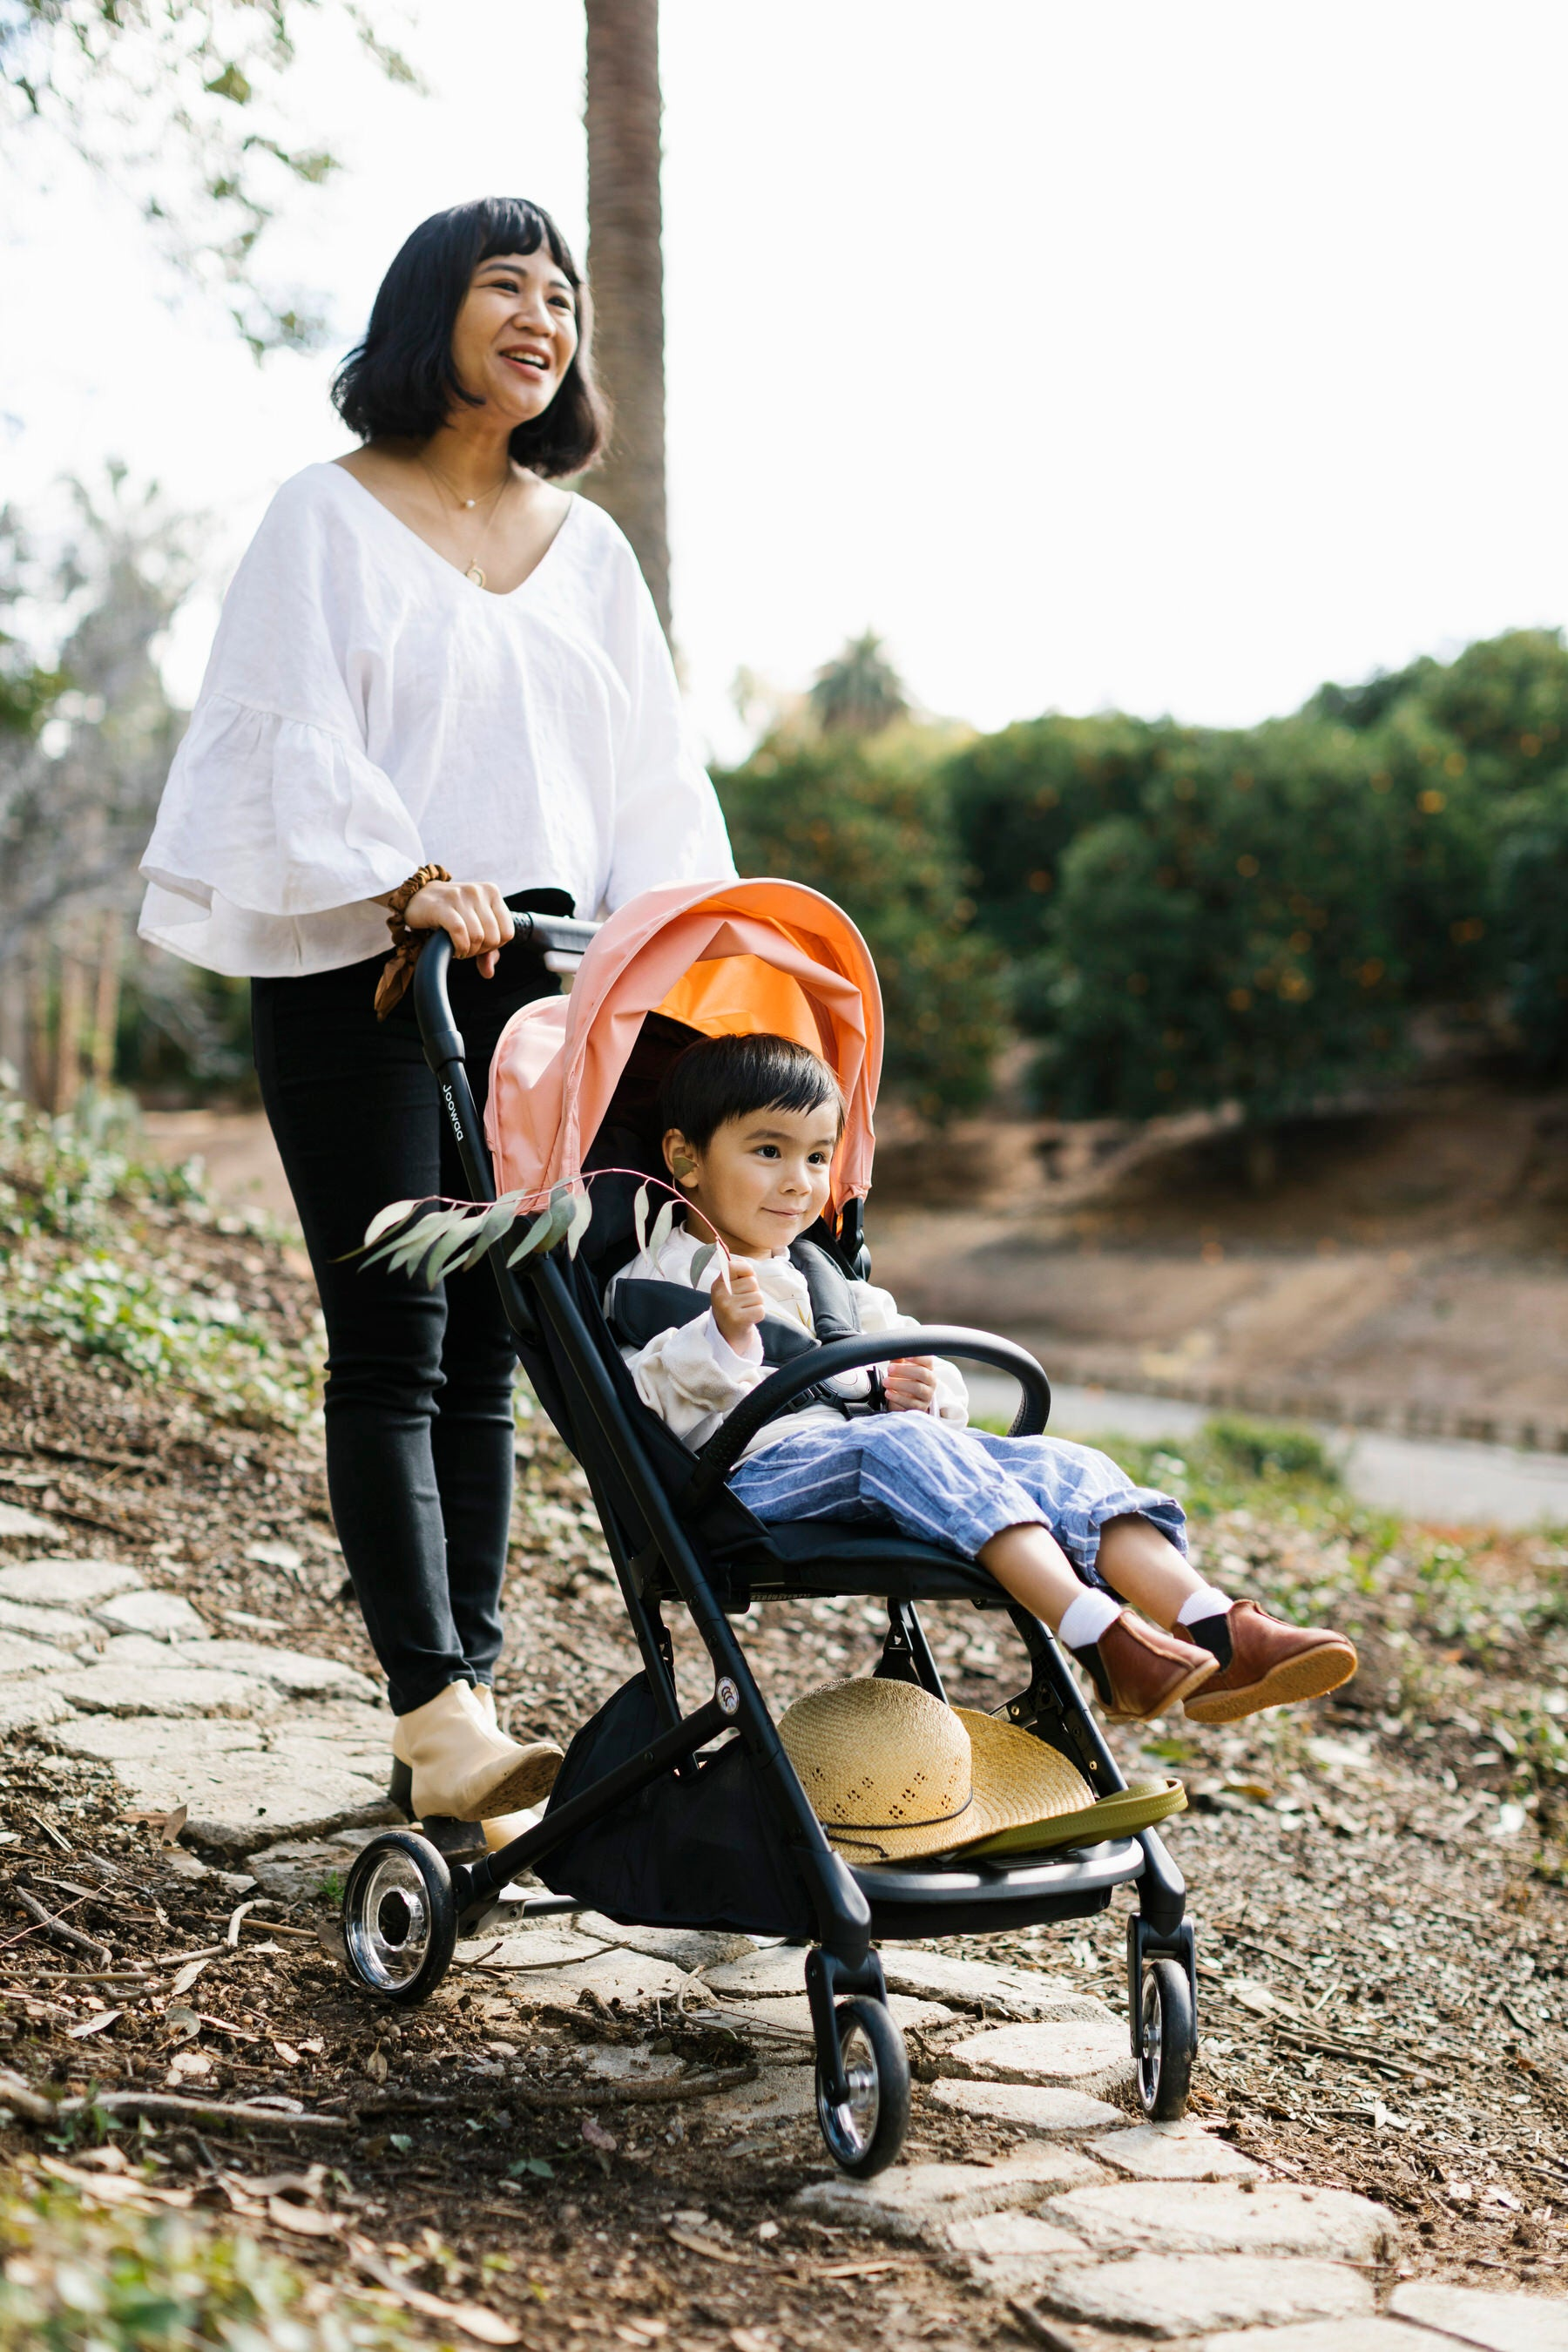 Melissa and son stroll along a nature trail